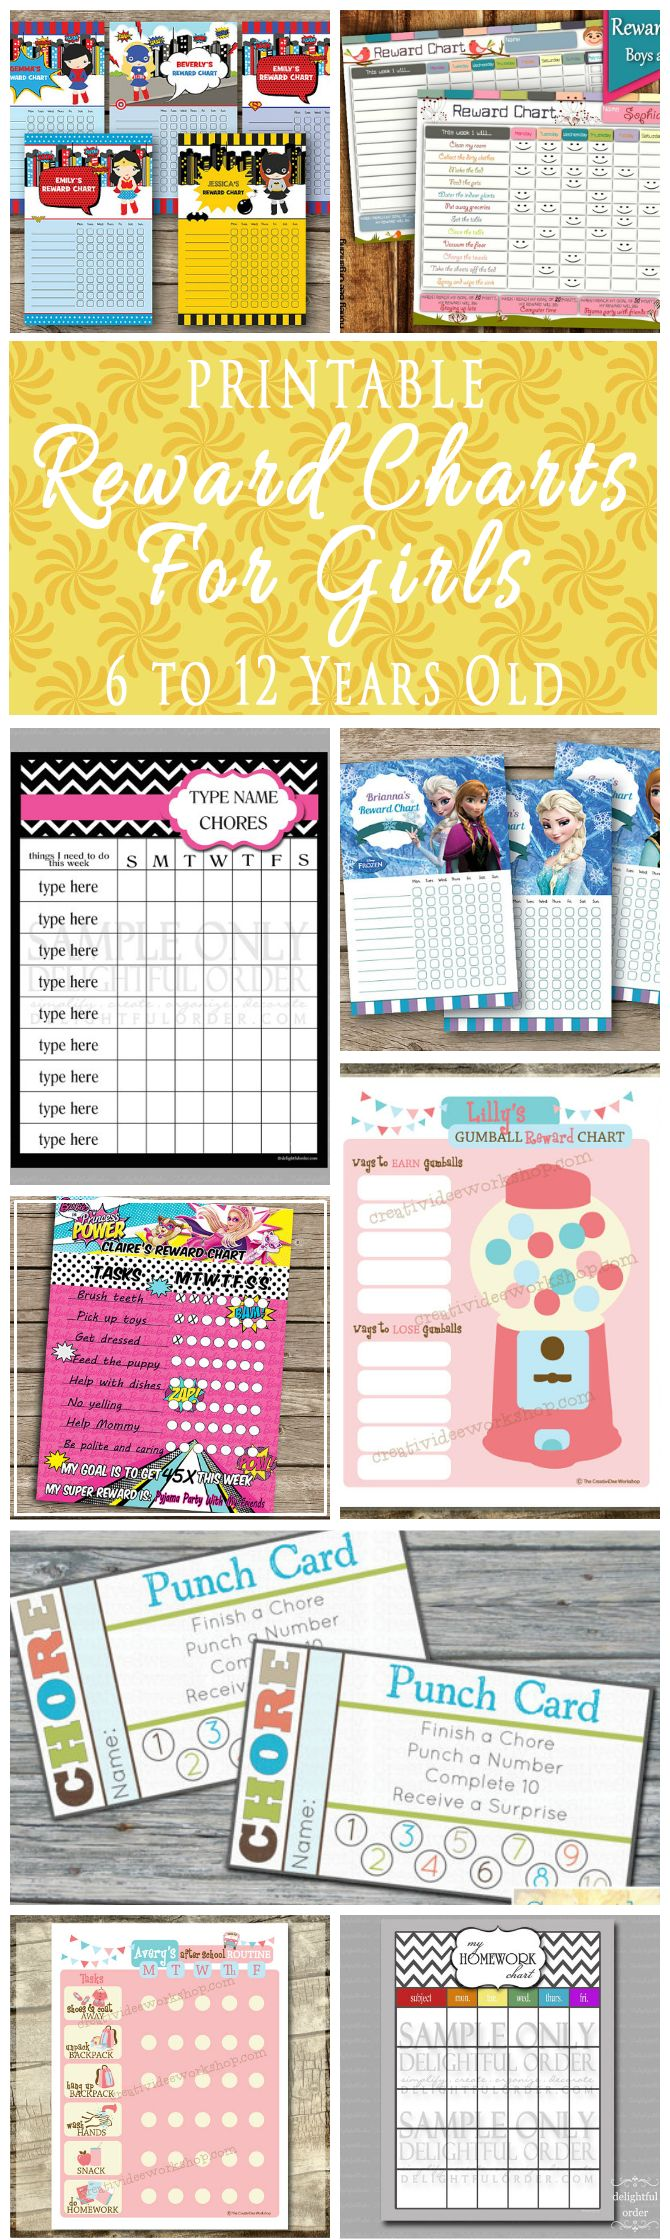 Printable Reward Charts For Kids 6 To 12 Years Old   Reward Charts,  Behavior Cahrts